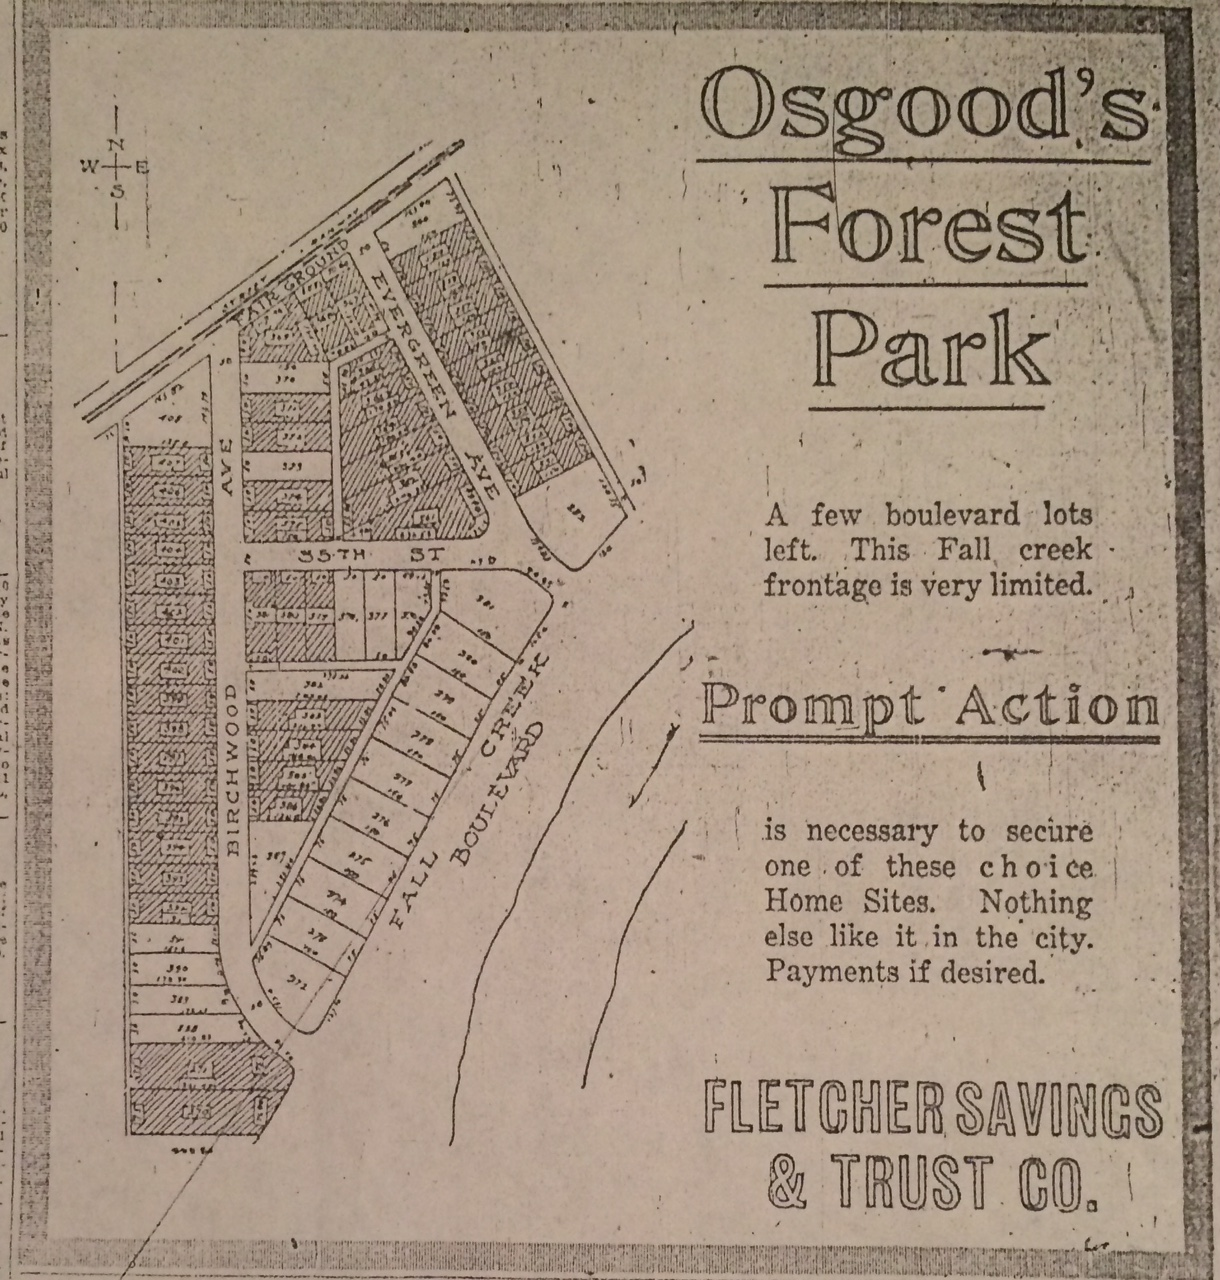 Misc. Monday: Move to a New Subdivision! In 1916